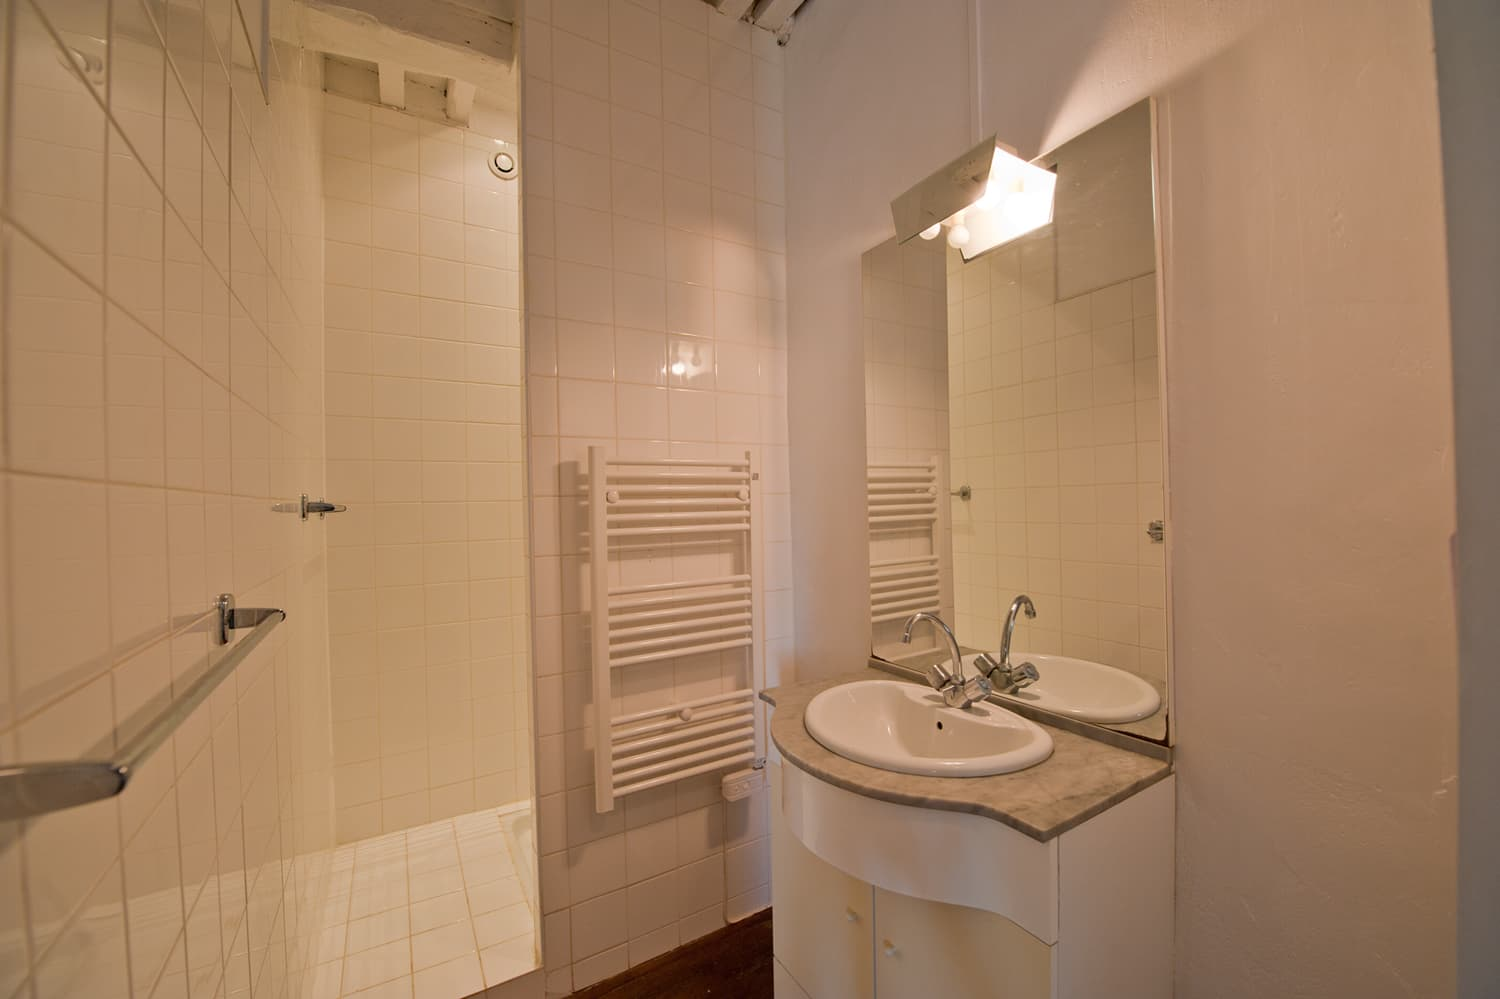 Bathroom in South West France rental accommodation